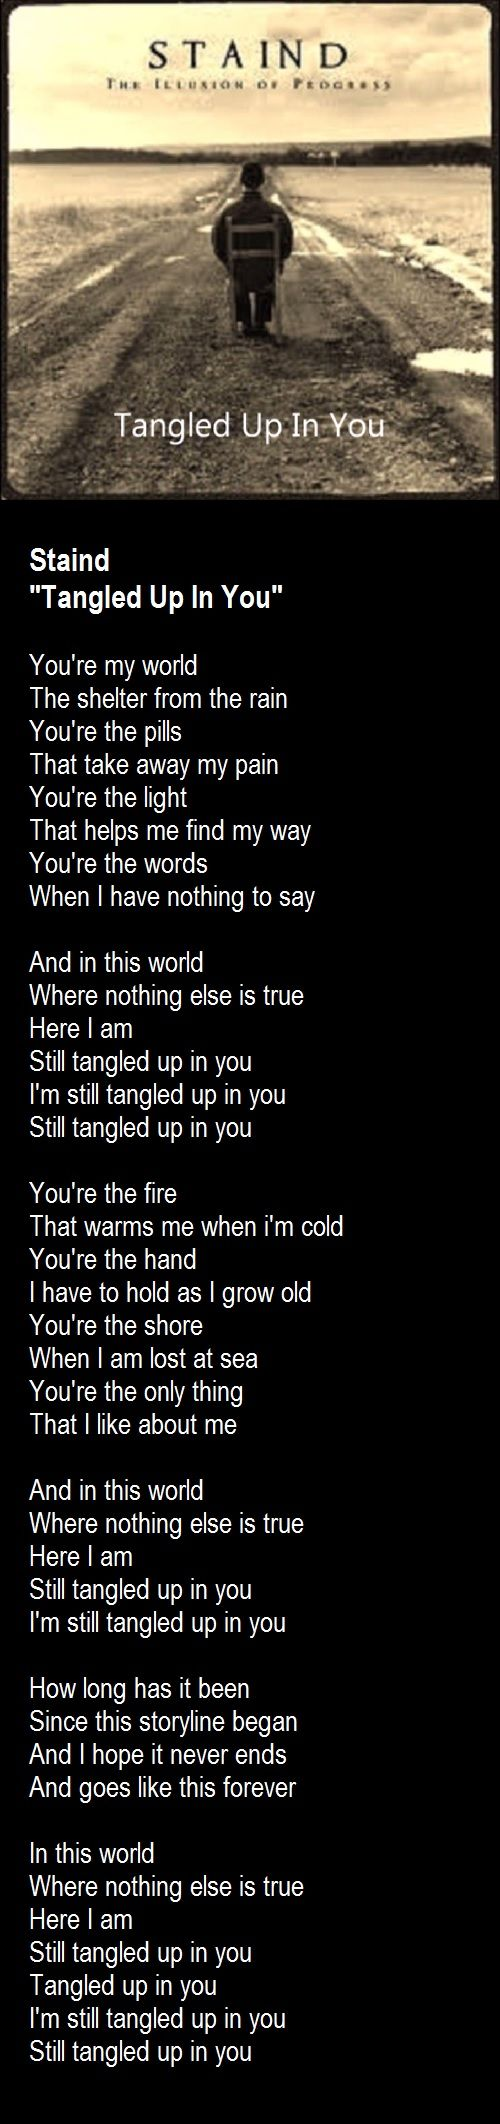 Staind - Tangled Up In You